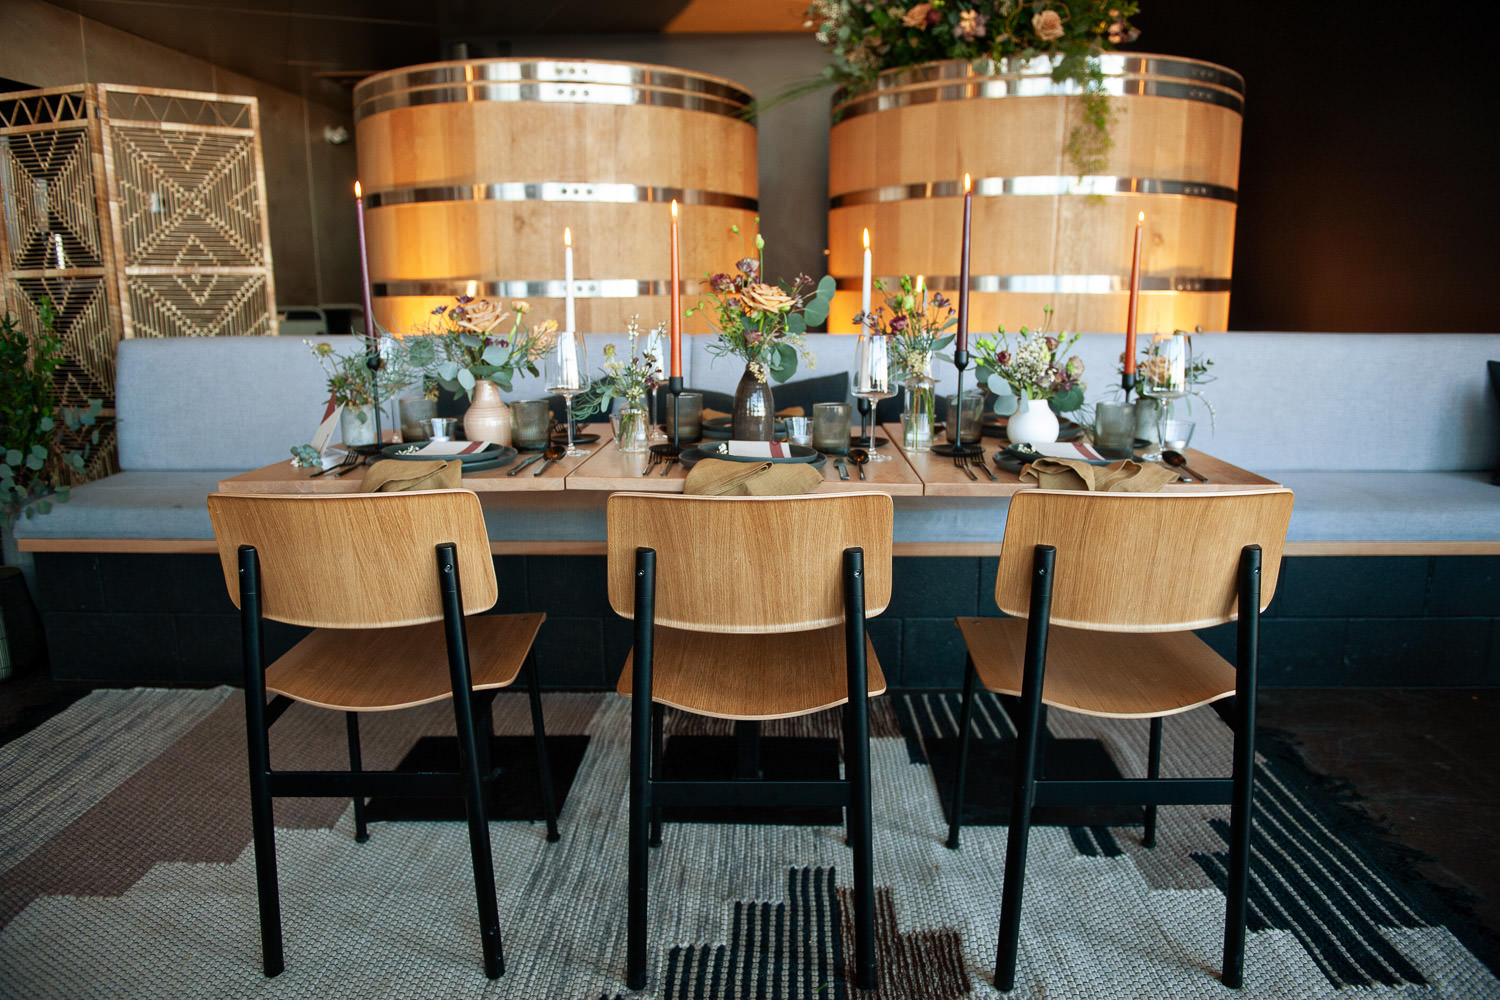 Reception table inside Annex Ale Project captured by Calgary wedding photographer Tara Whittaker